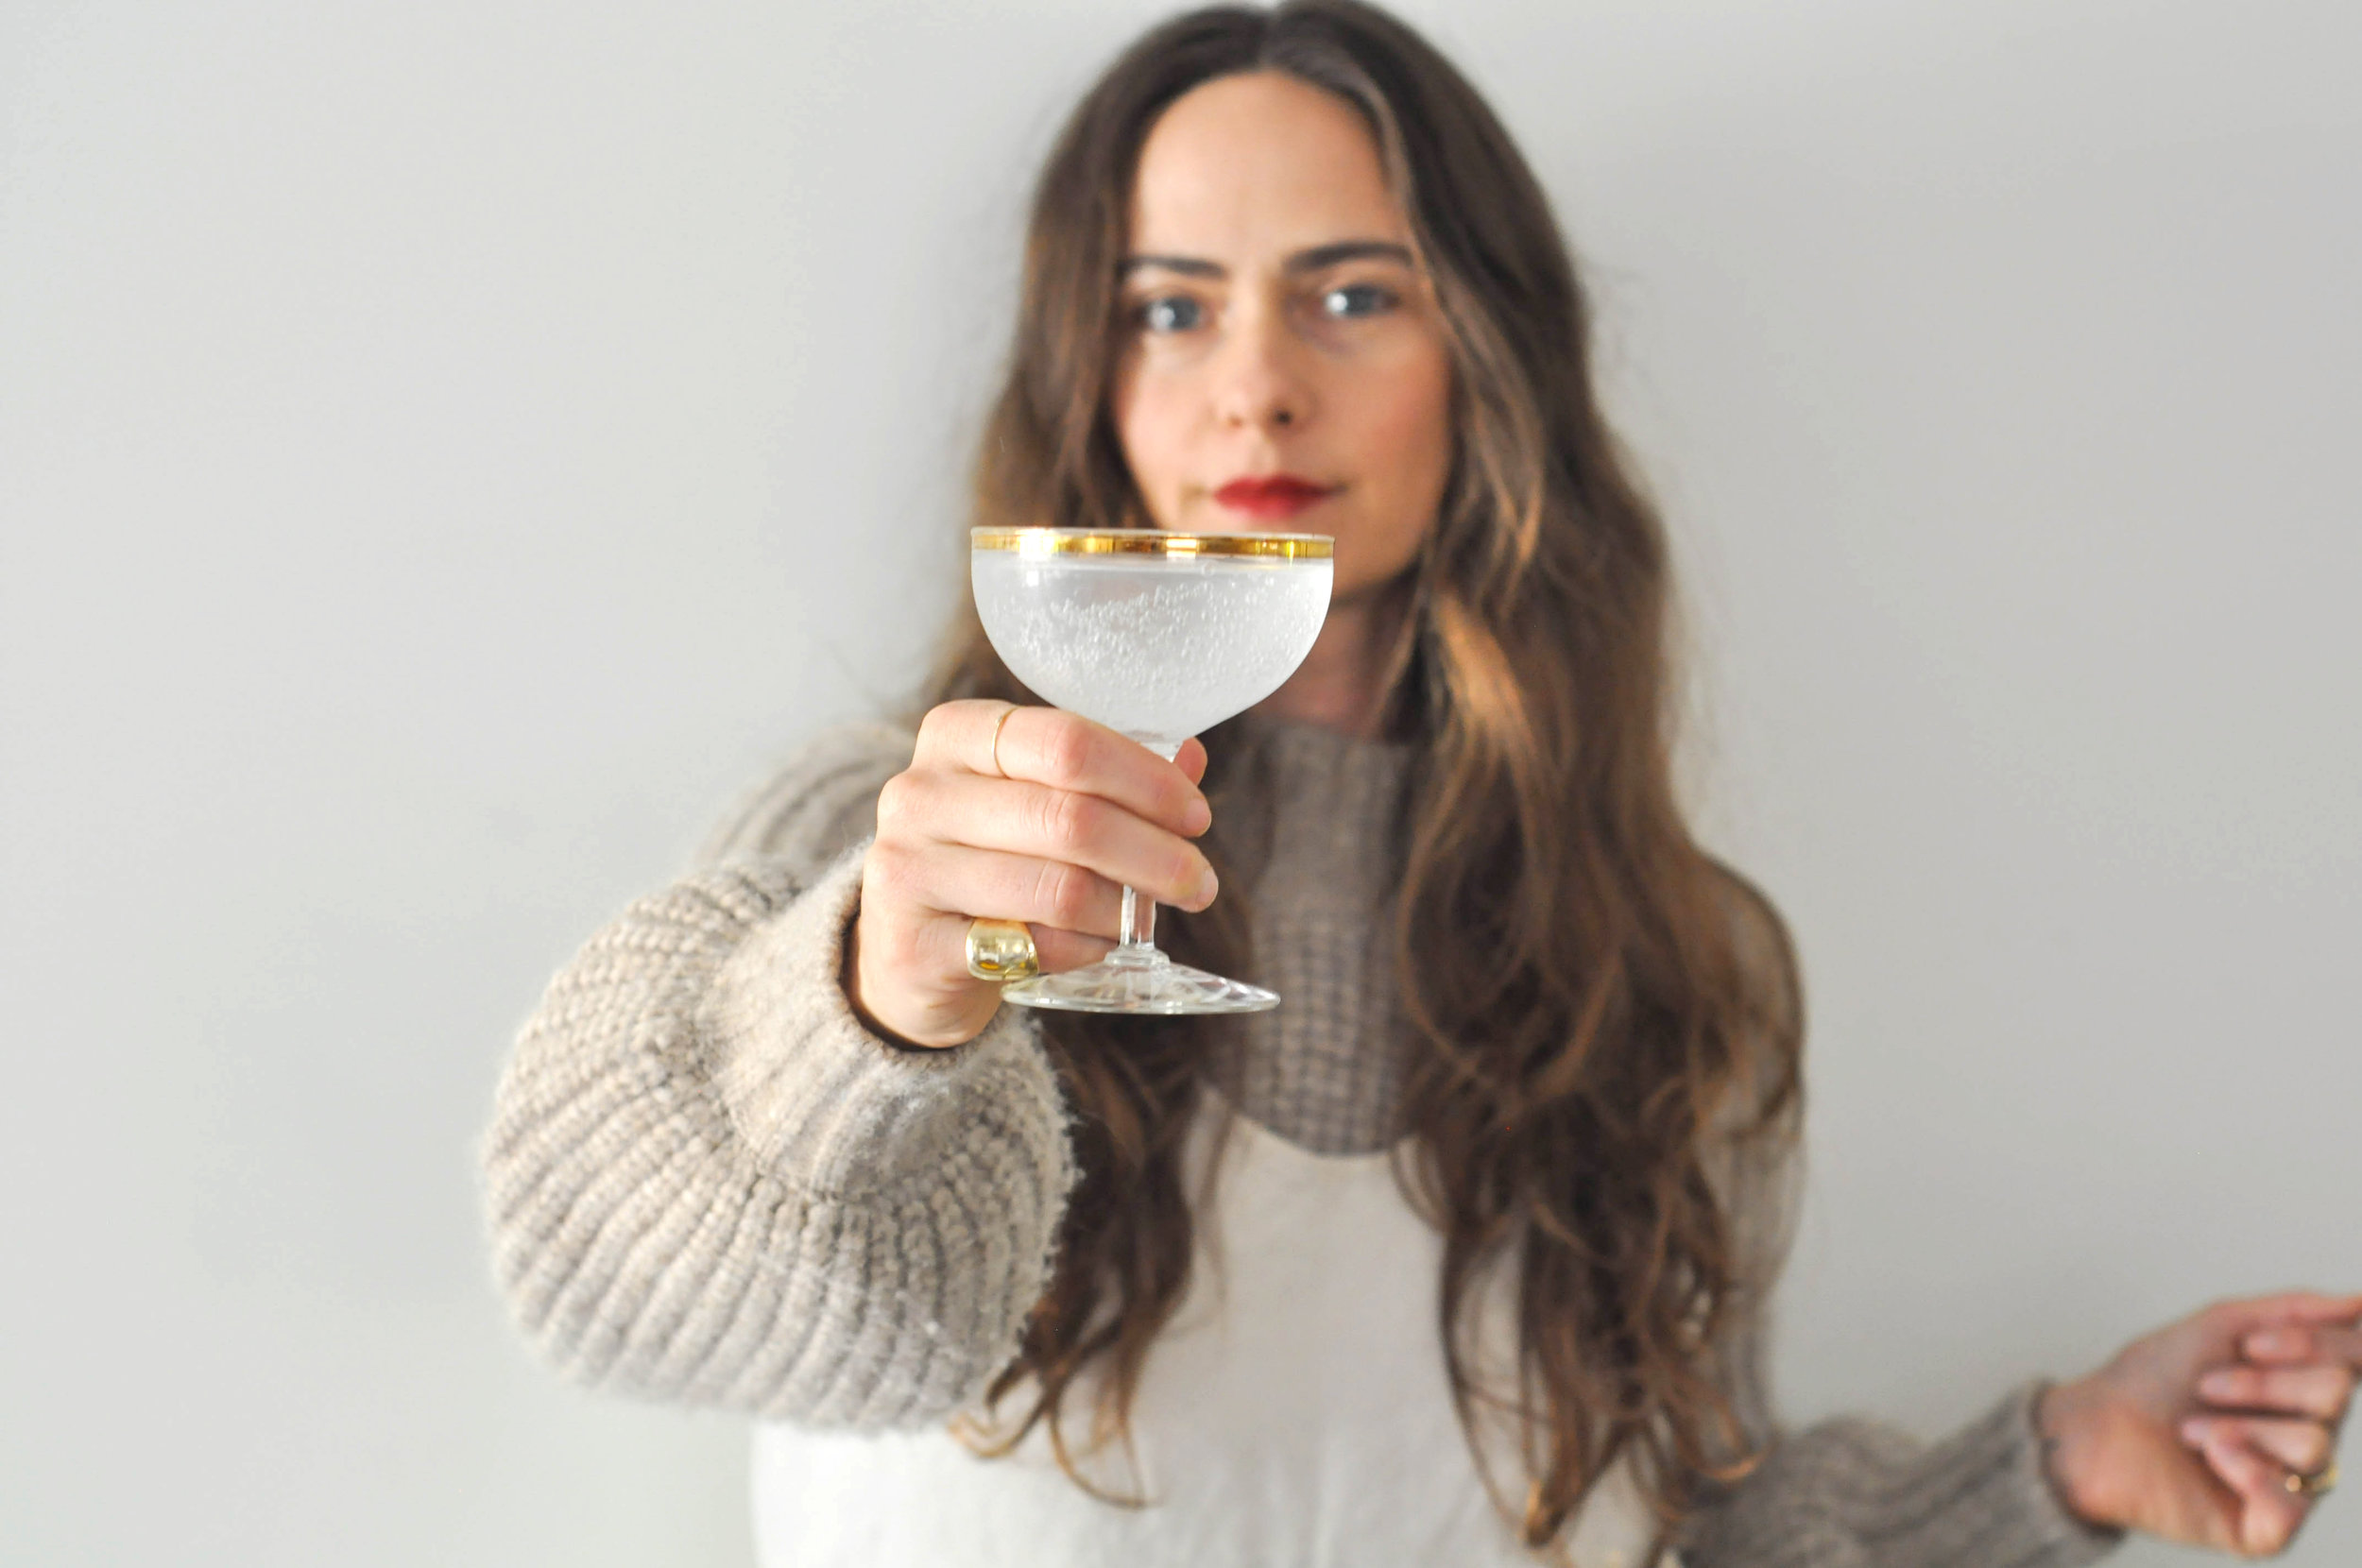 free-and-natieve_long hair, sweater, dress, rings, cheers, glass, red lips_1 (1 of 1).jpg